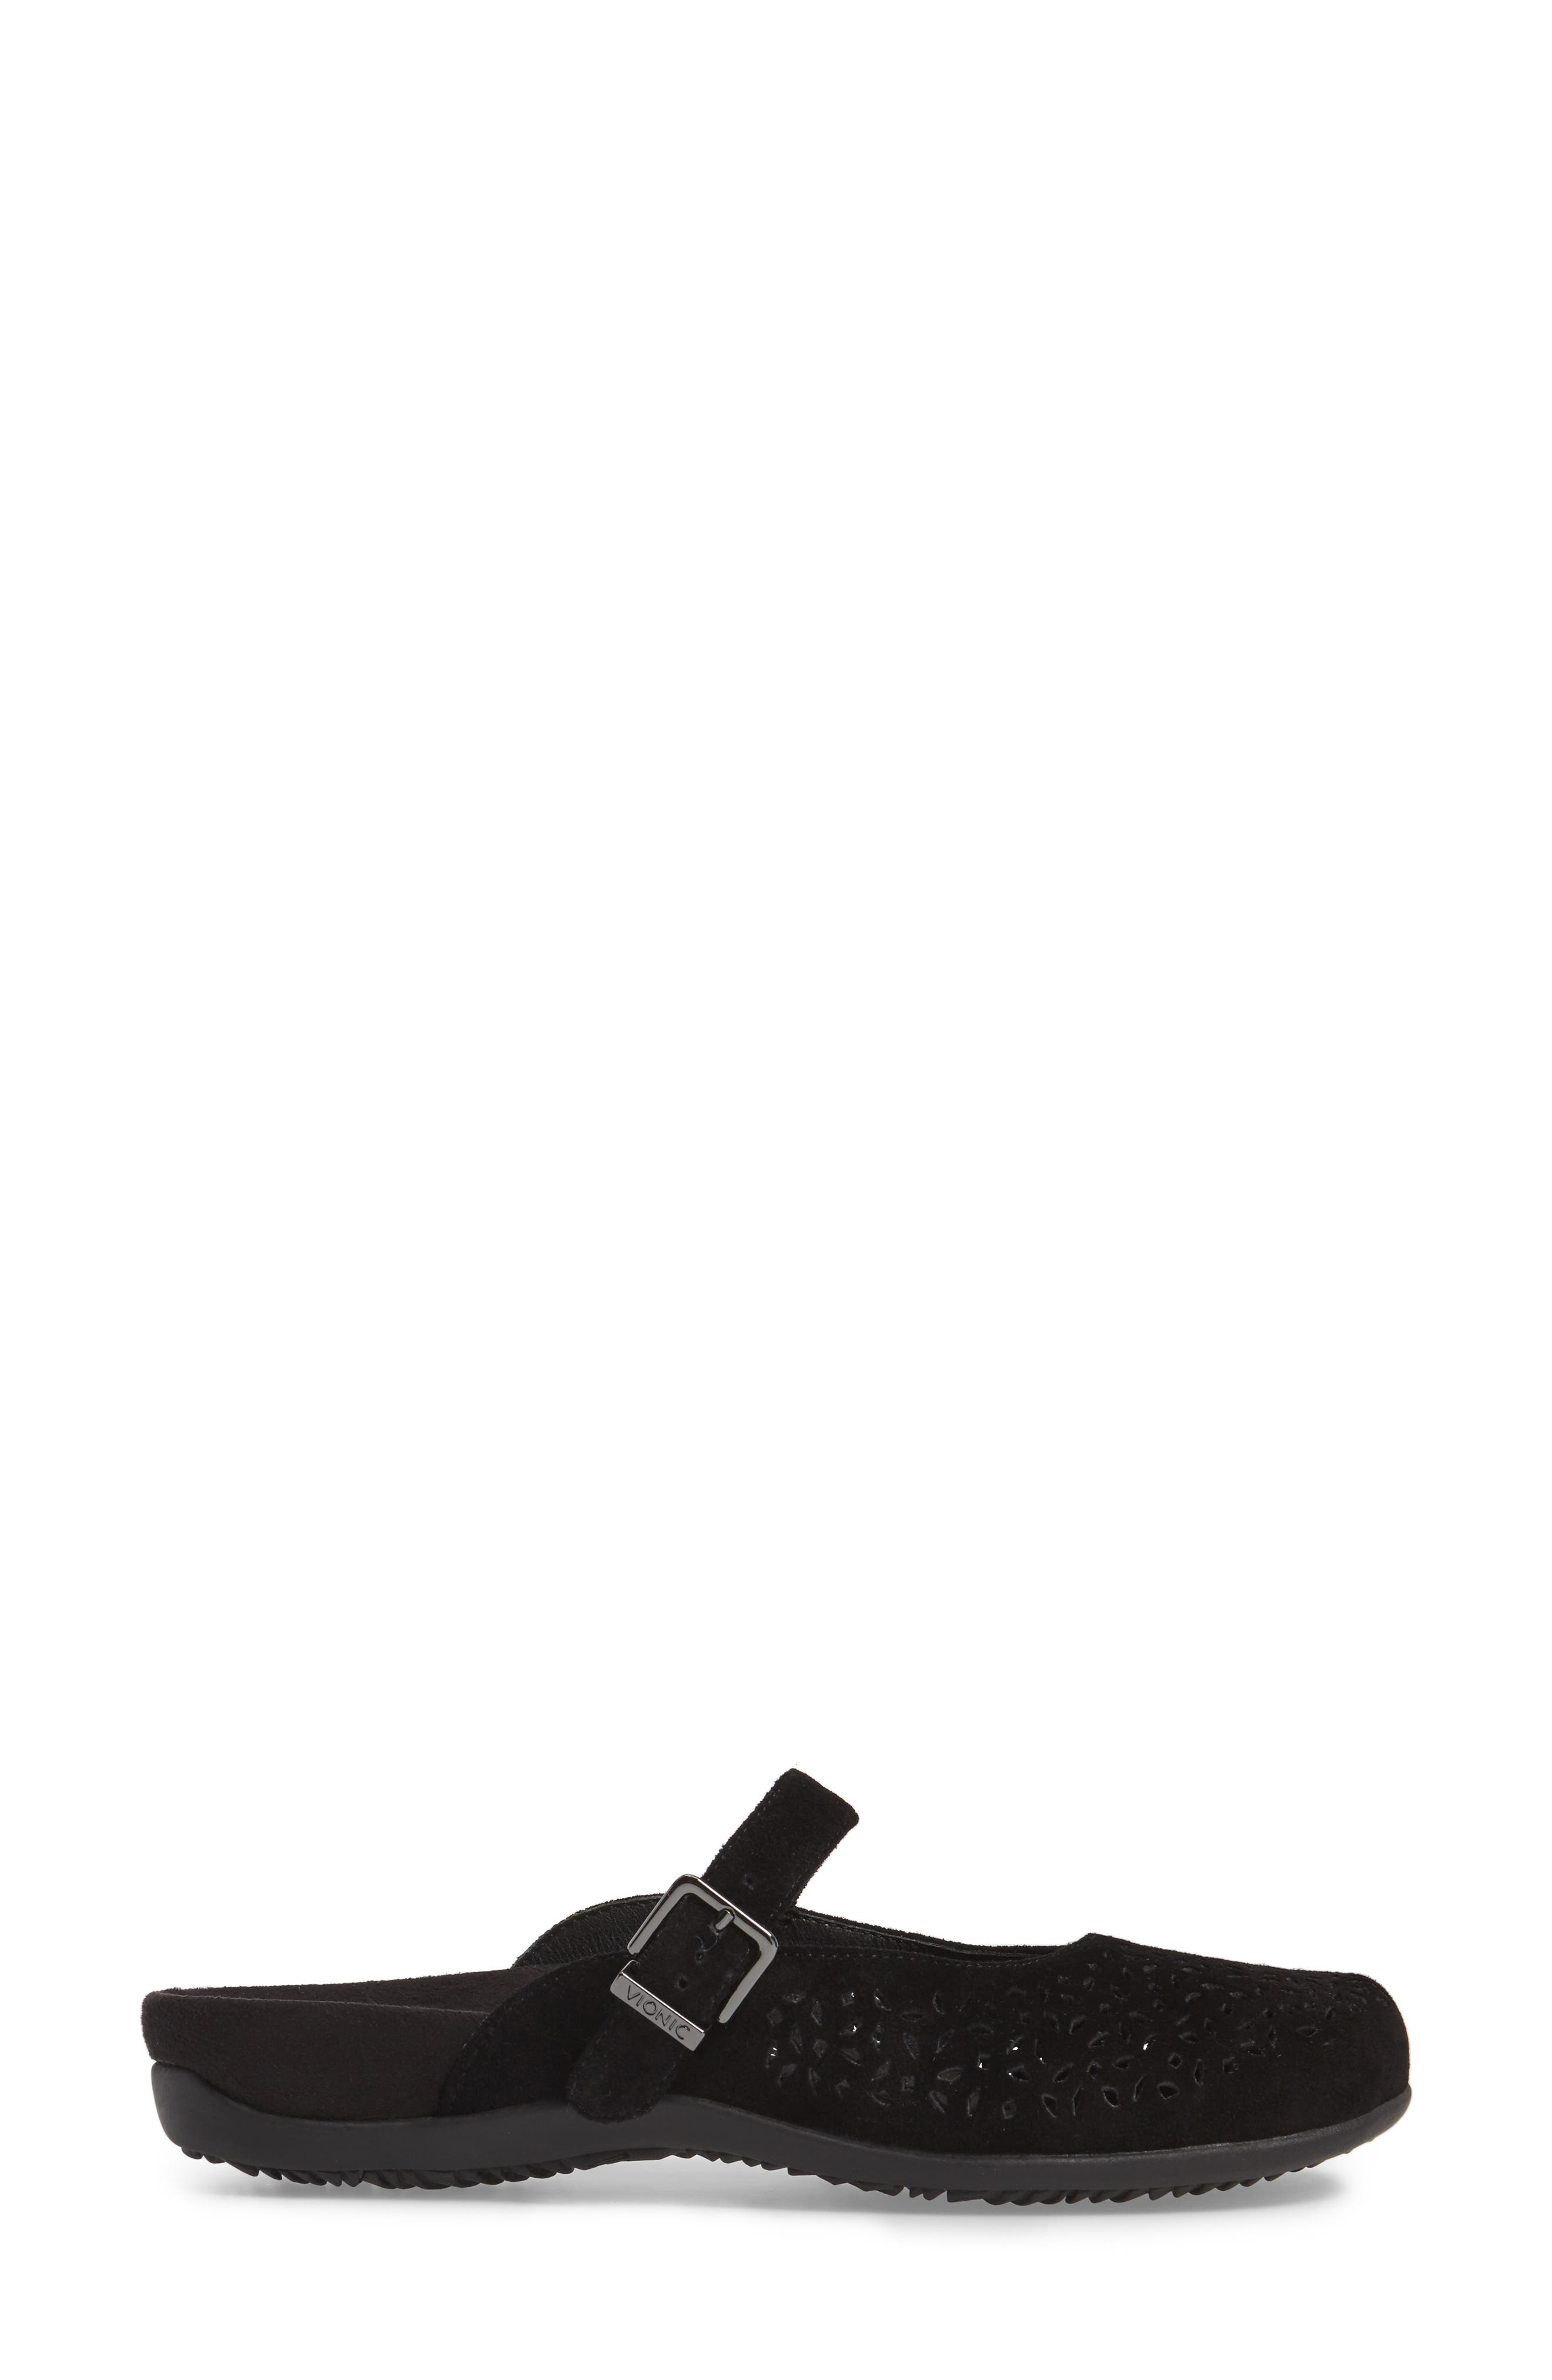 VIONIC, Rest Lidia Perforated Mary Jane Mule, Alternate thumbnail 3, color, BLACK SUEDE